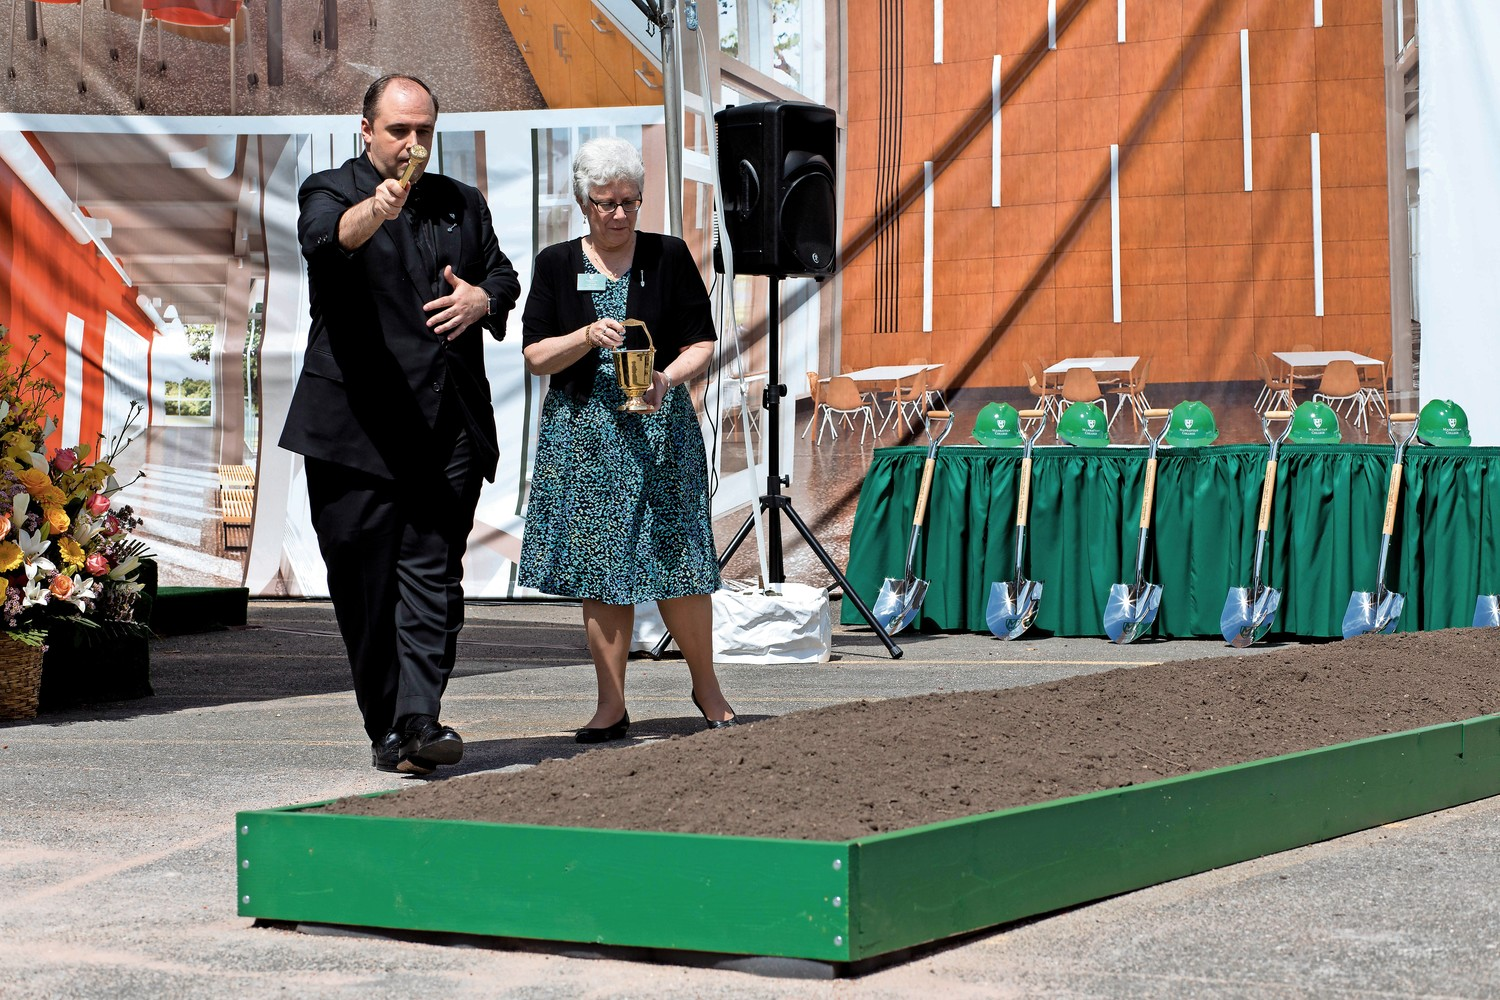 Rev. Thomas Frank, Manhattan College's chaplain, blesses ceremonial soil along with Lois Harr, the assistant vice principal for student life, at a groundbreaking ceremony for the Patricia and Cornelius J. Higgins '62 Engineering and Science Center. The new center is expected to be completed in 2020.